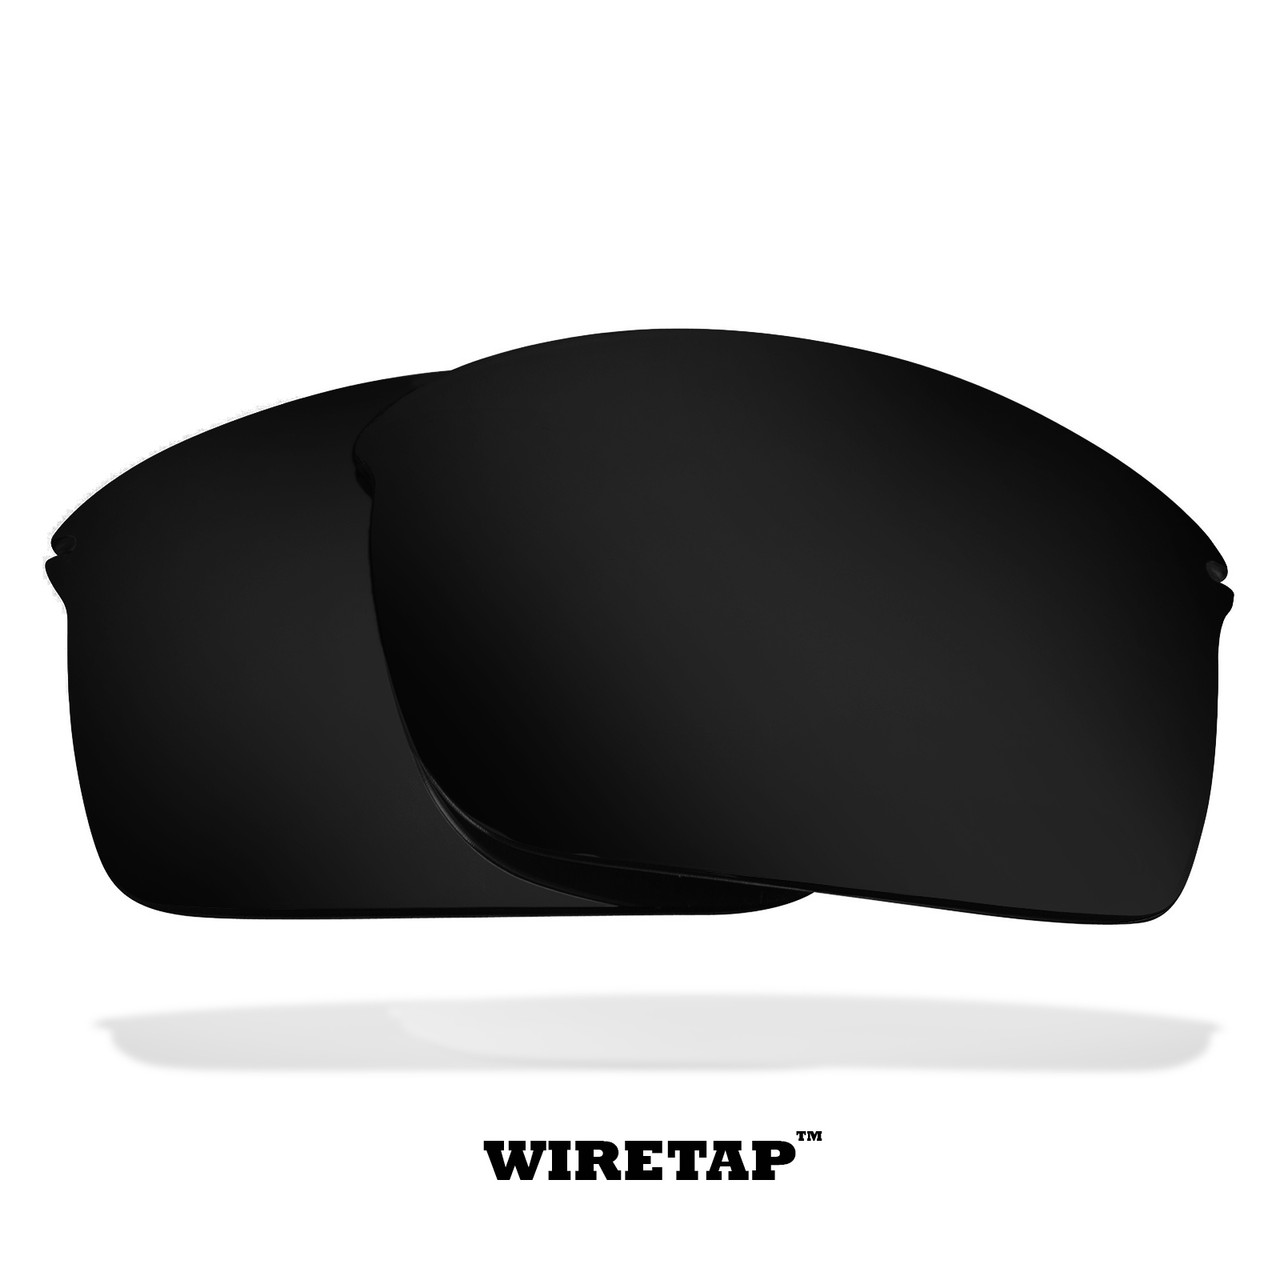 ac6efc03a3 Fits Oakley Wiretap - Seek Optics